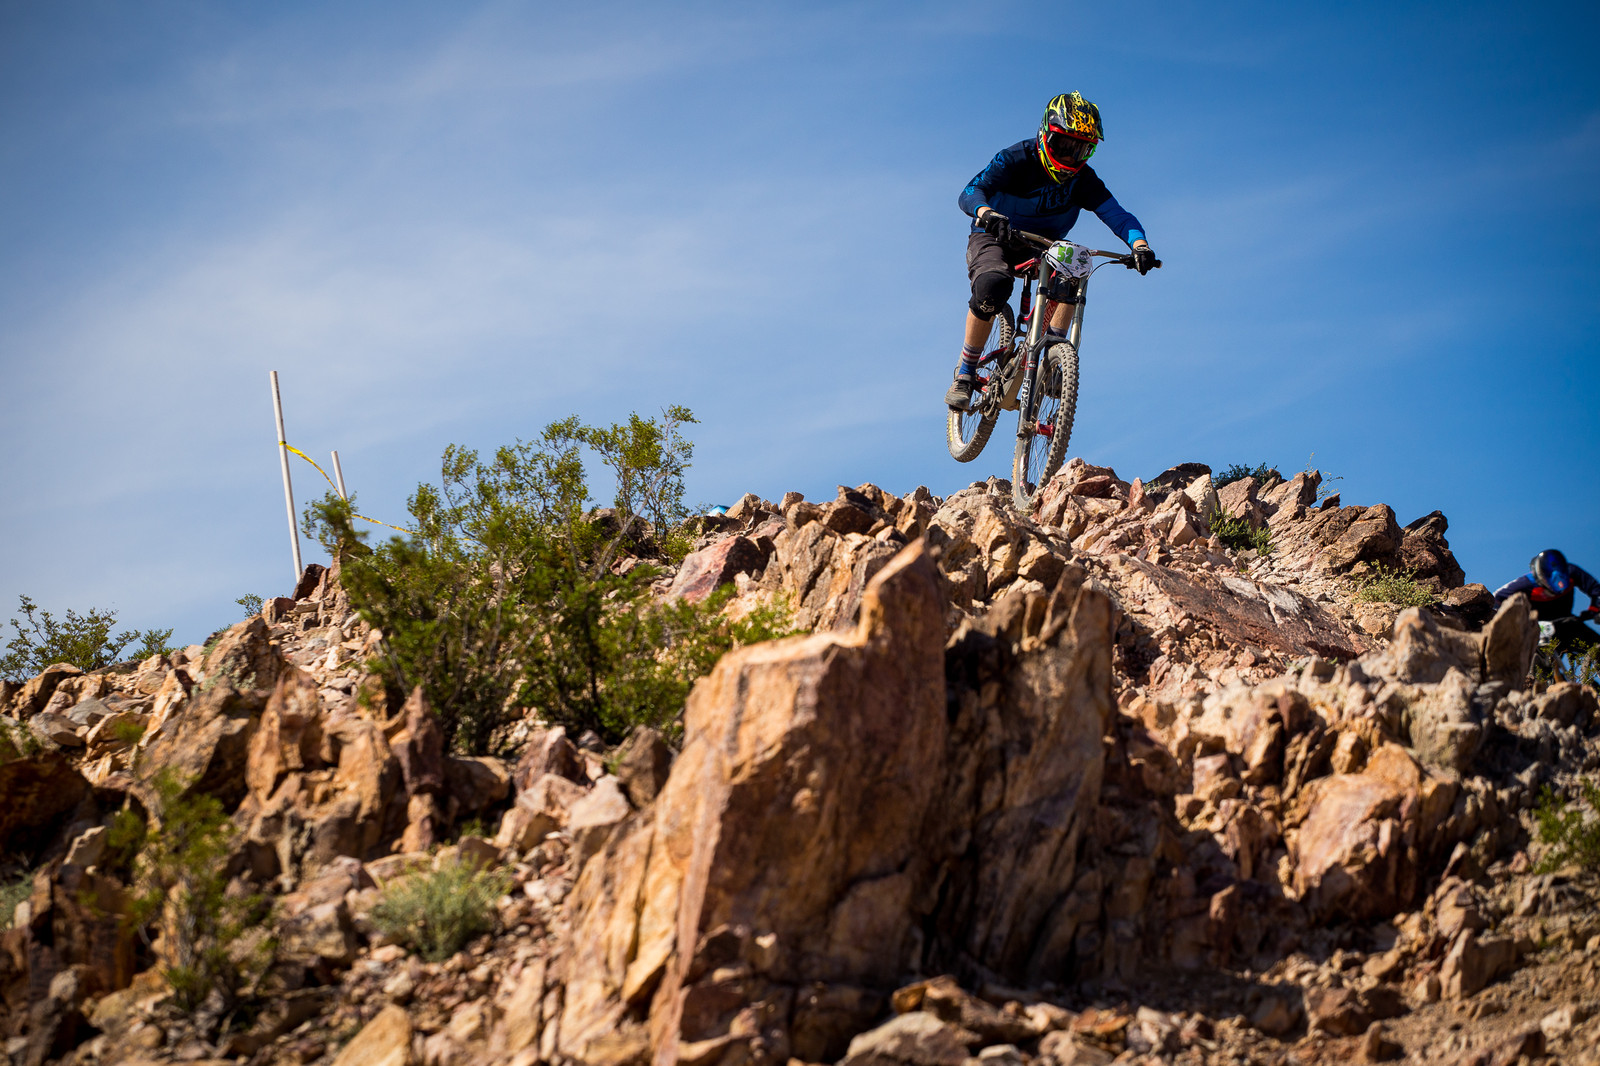 2017 Reaper Madness DH at Bootleg Canyon-2 - 2017 Reaper Madness DH Photos - Mountain Biking Pictures - Vital MTB